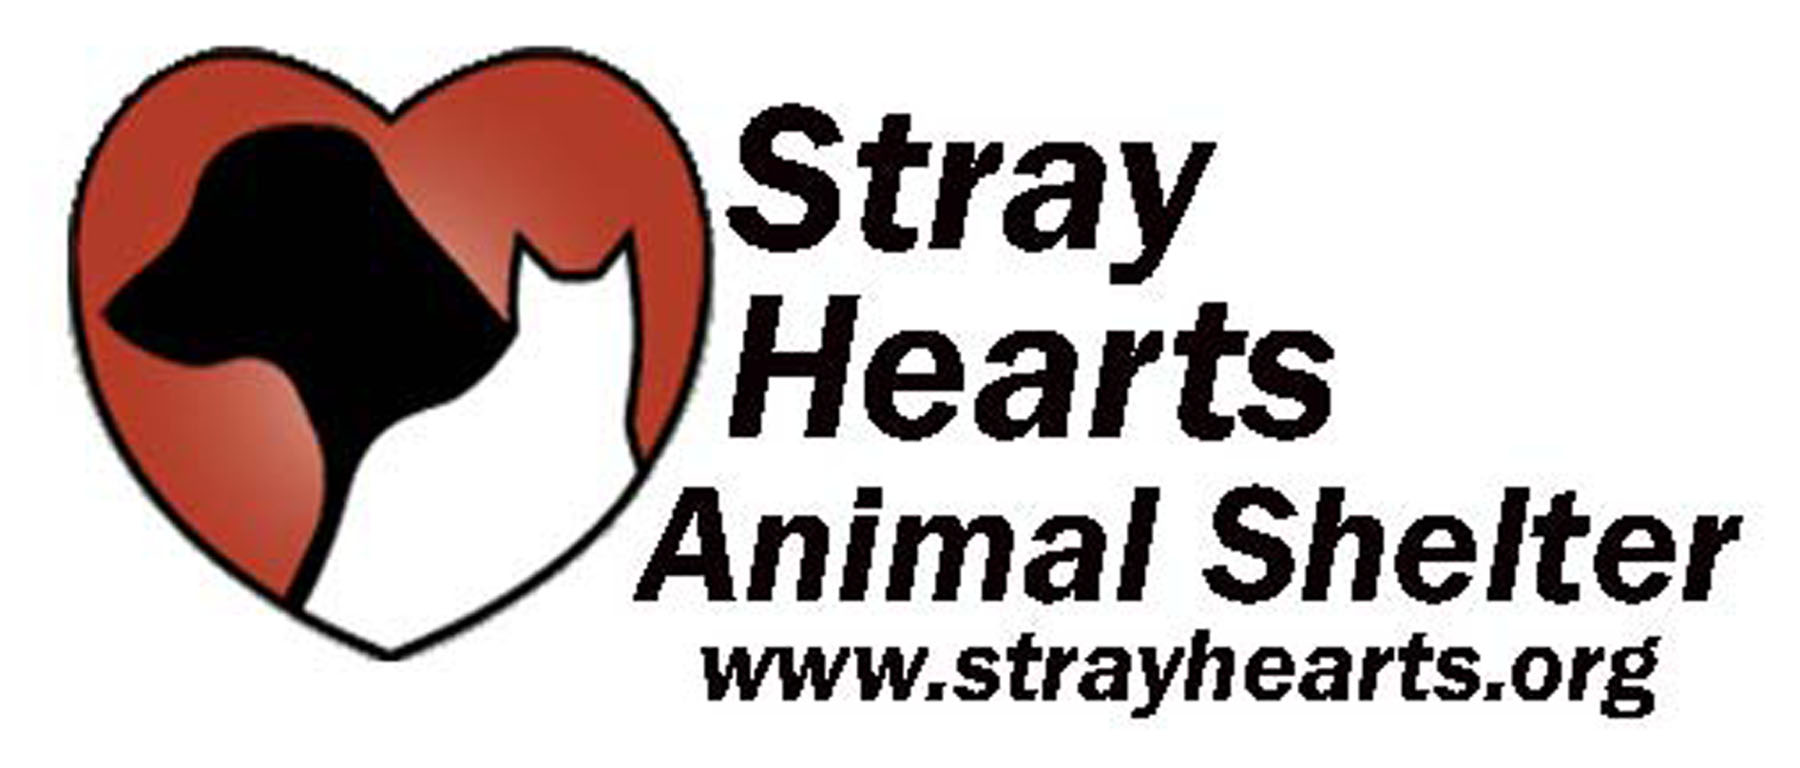 Stray Hearts Animal Shelter